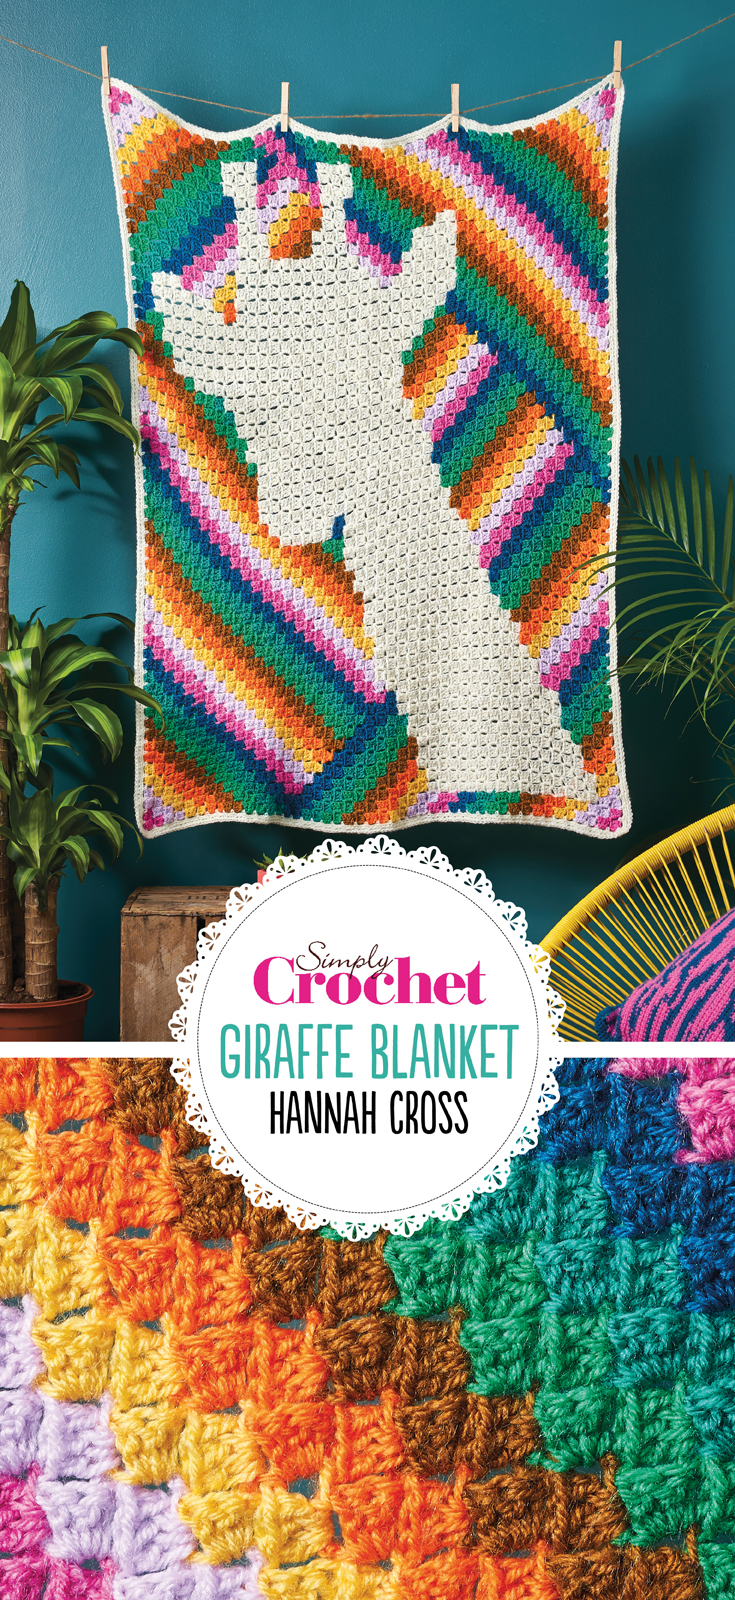 Who's hiding in this blanket? At first glance, the motif blends into the dynamic canvas of colour, before a second look reveals the pixellated giraffe hiding within the multicoloured swatches. Using the corner to corner technique, the blanket uses diagonals of colour to create a design that mixes motif and pattern perfectly.